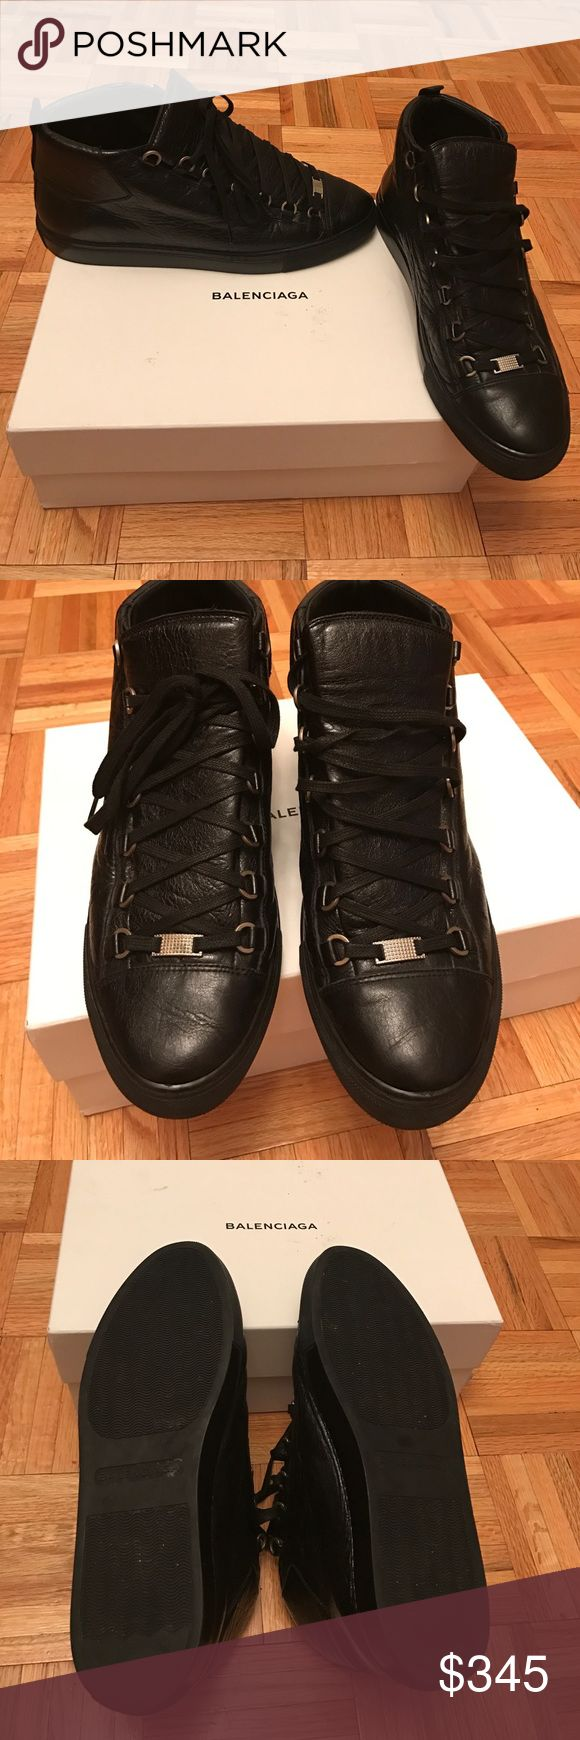 Gently worn mens AUTHENTIC BALENCIAGA sneakers Gently worn mens AUTHENTIC Balenciaga Arena sneakers in black size EU 43, US 10. These run big and fit more like an 11. Comes with dust bag and box. Balenciaga Shoes Sneakers